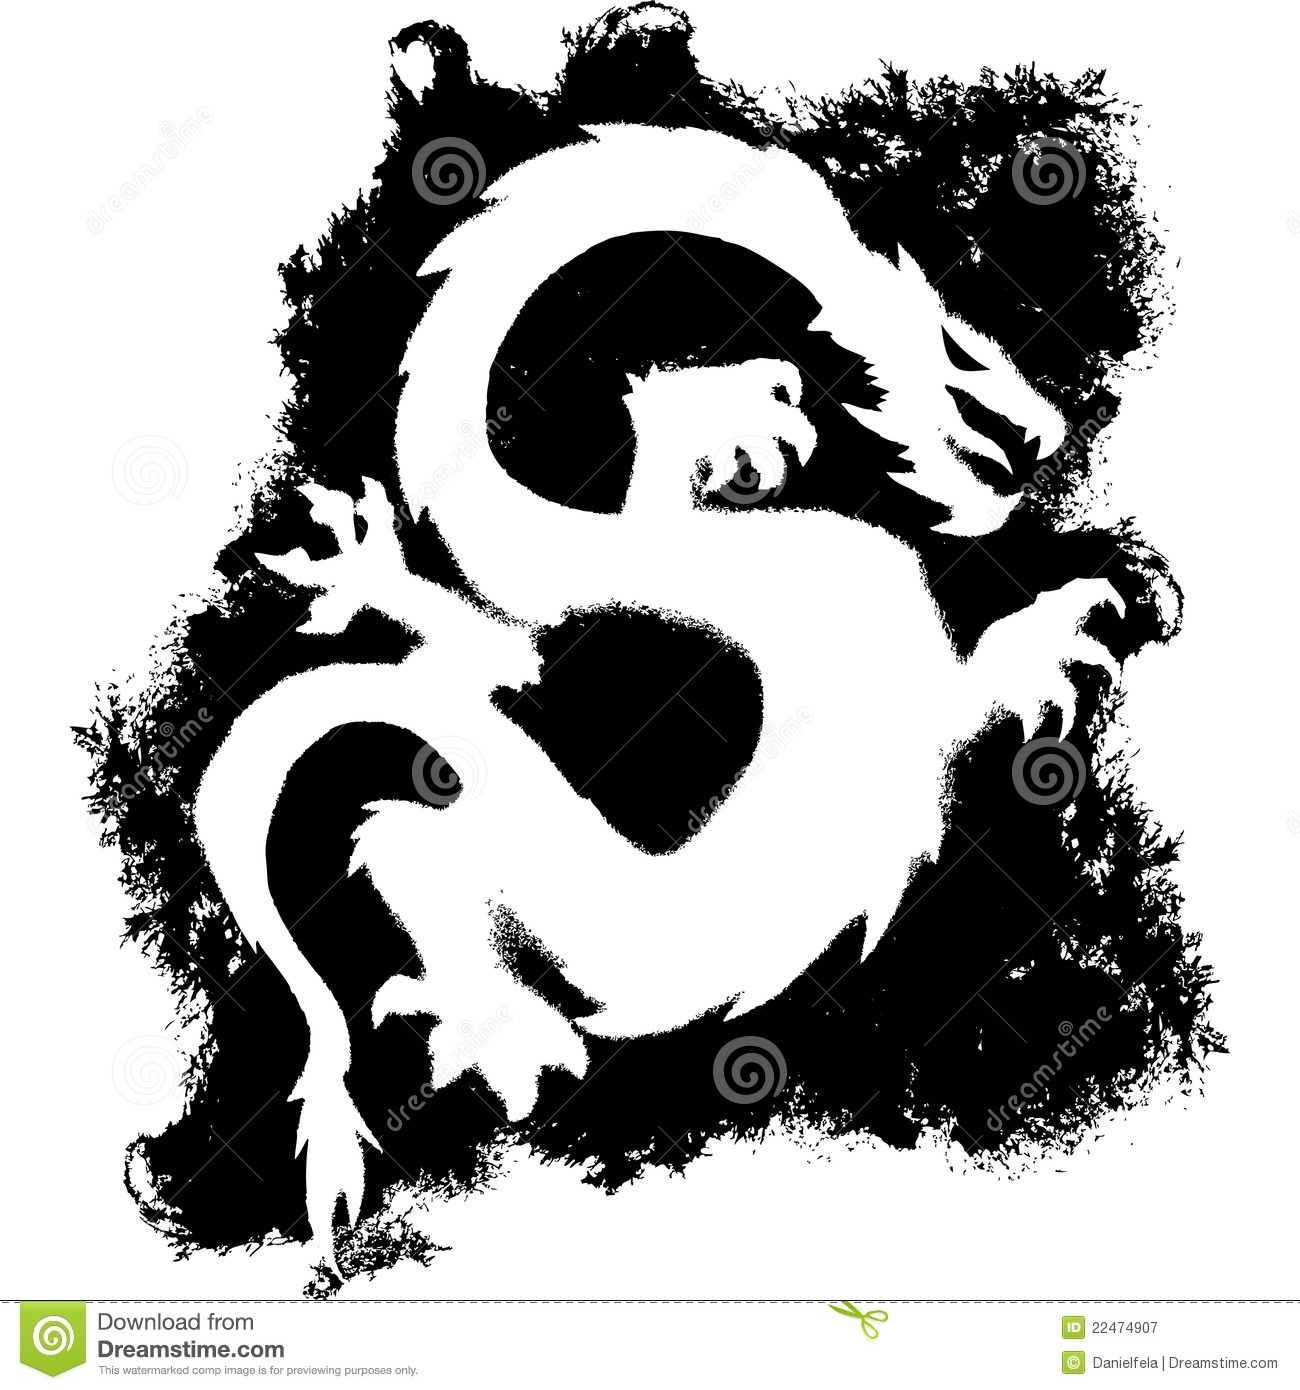 collection of mythical dragons photos illustrations dreamstime id